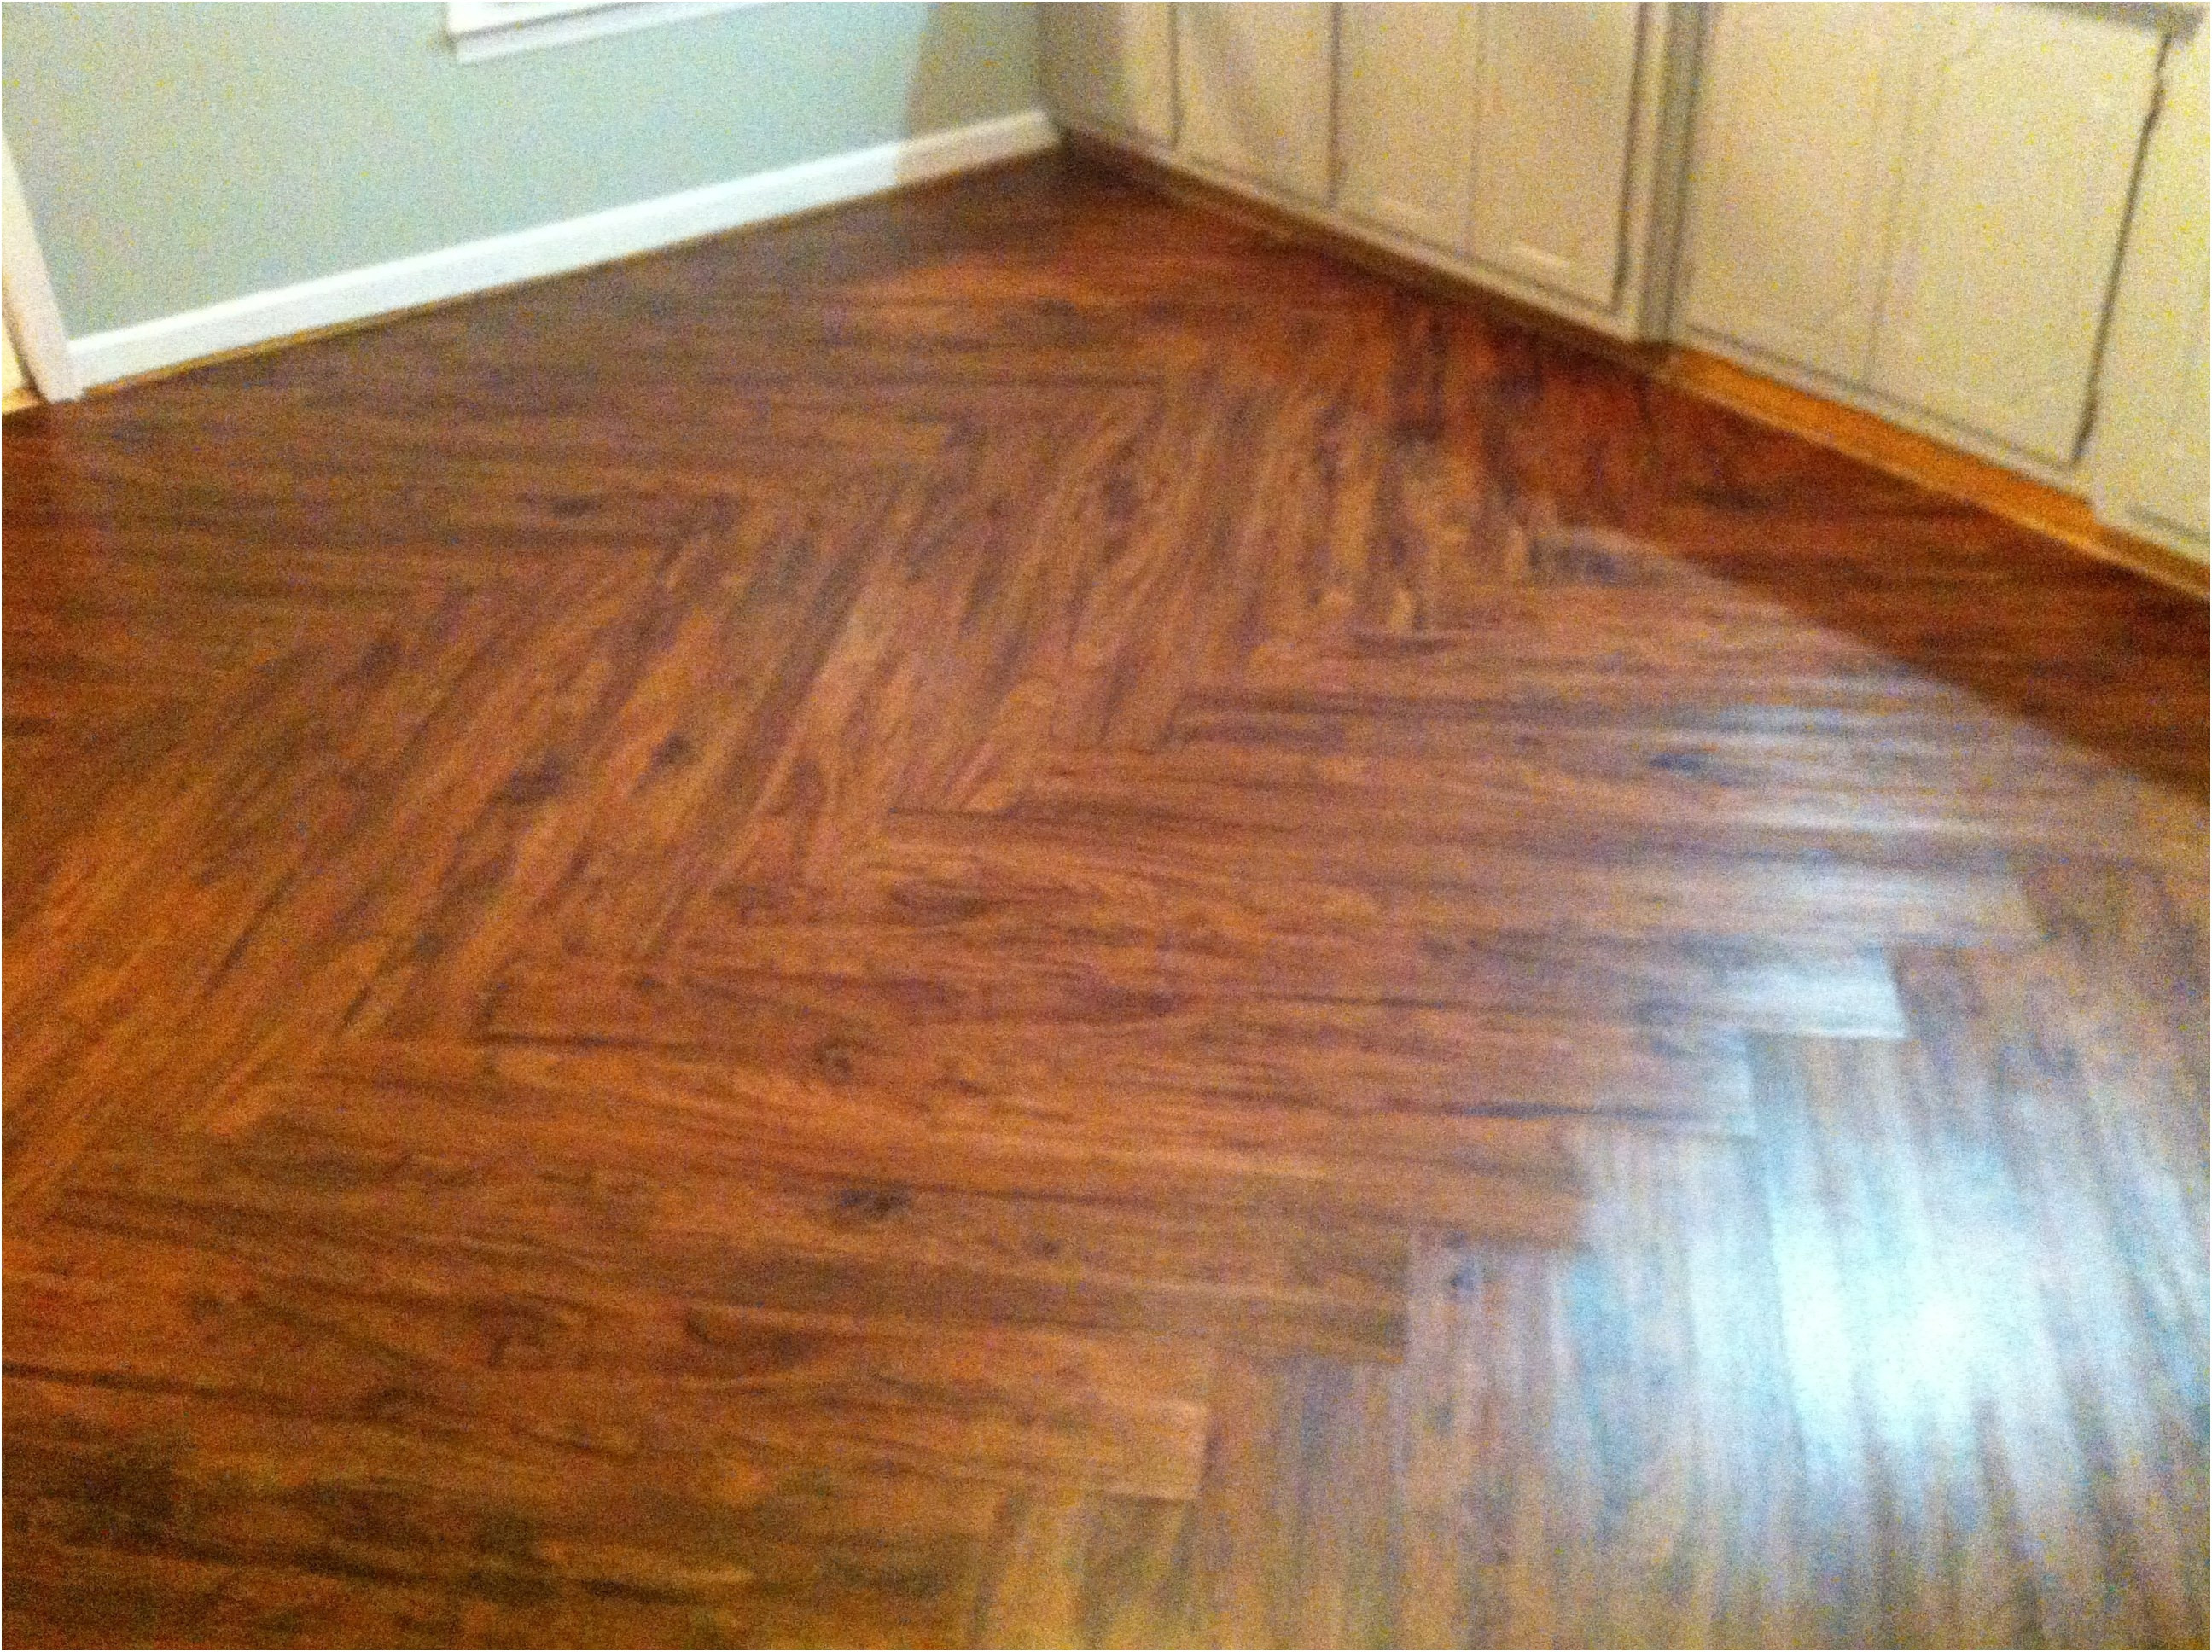 home depot hardwood floor cleaner of how to install allure flooring lovely best way to clean vinyl plank intended for how to install allure flooring new hardwood floor home depot best vinyl wood flooring planks vinyl